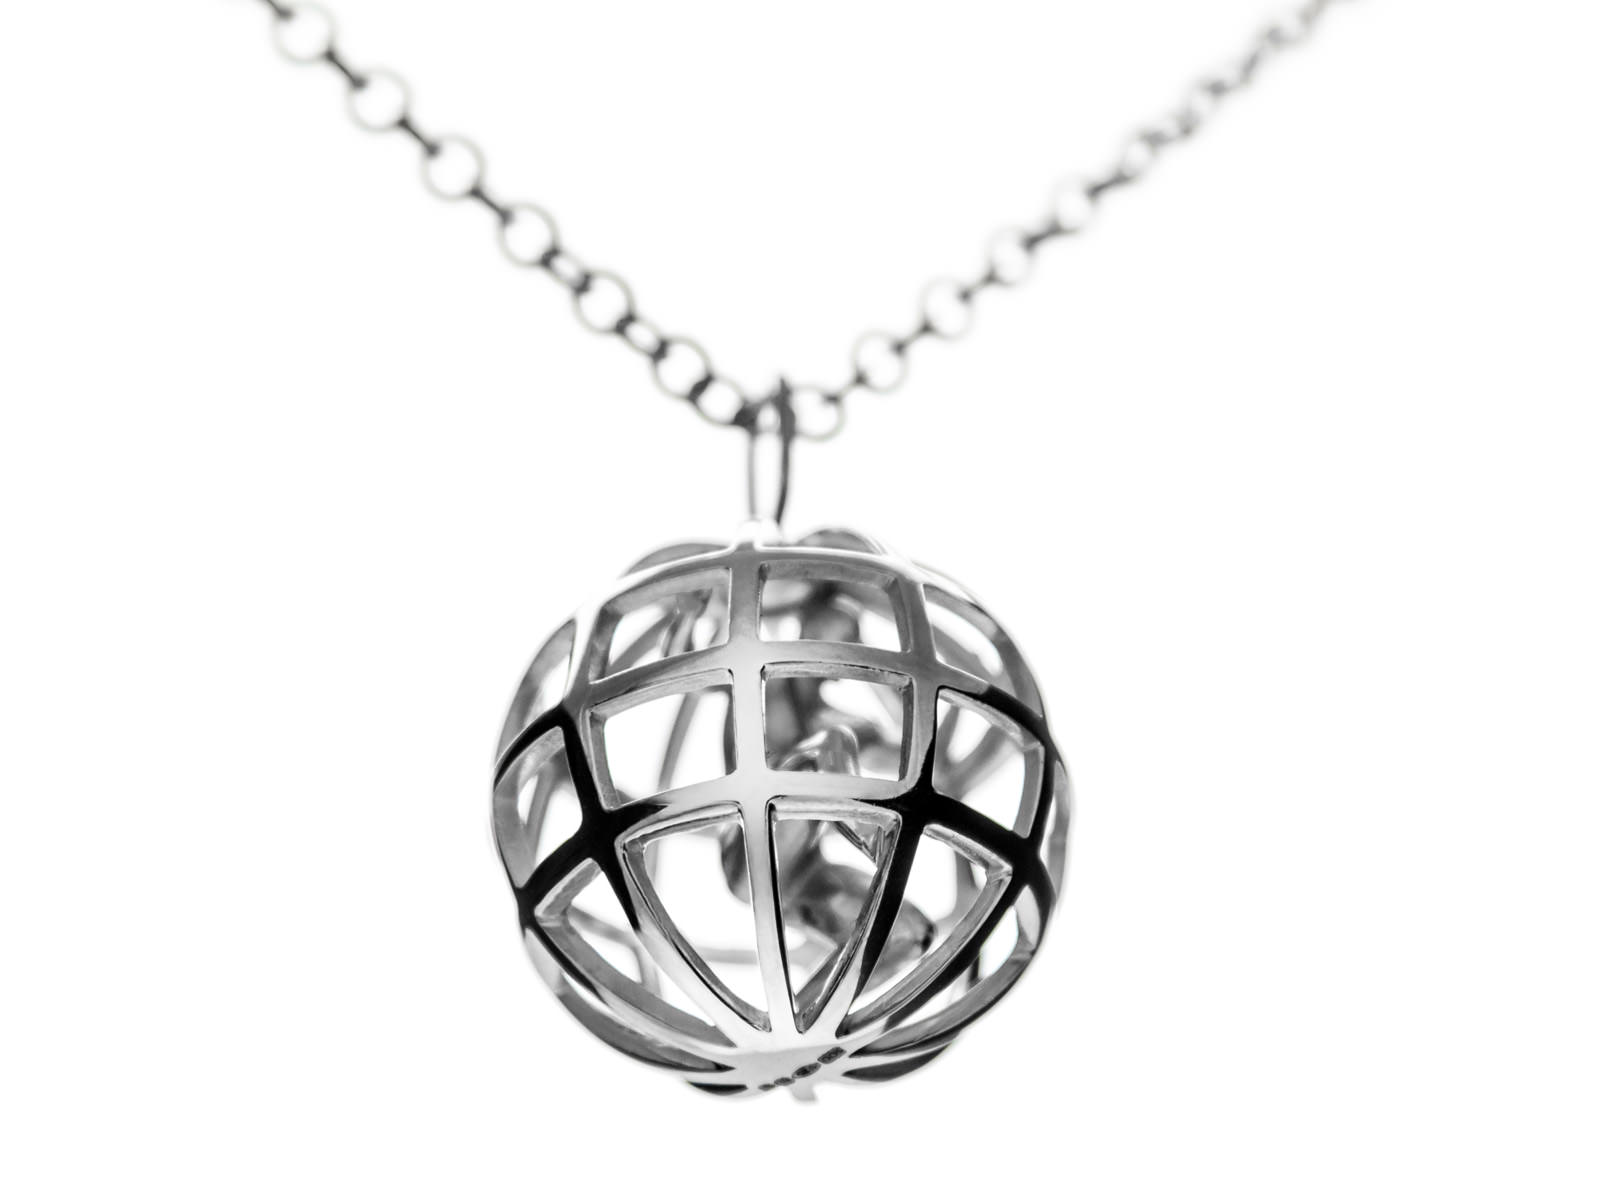 A stirling silver Atlas pending hanging from the silver chain